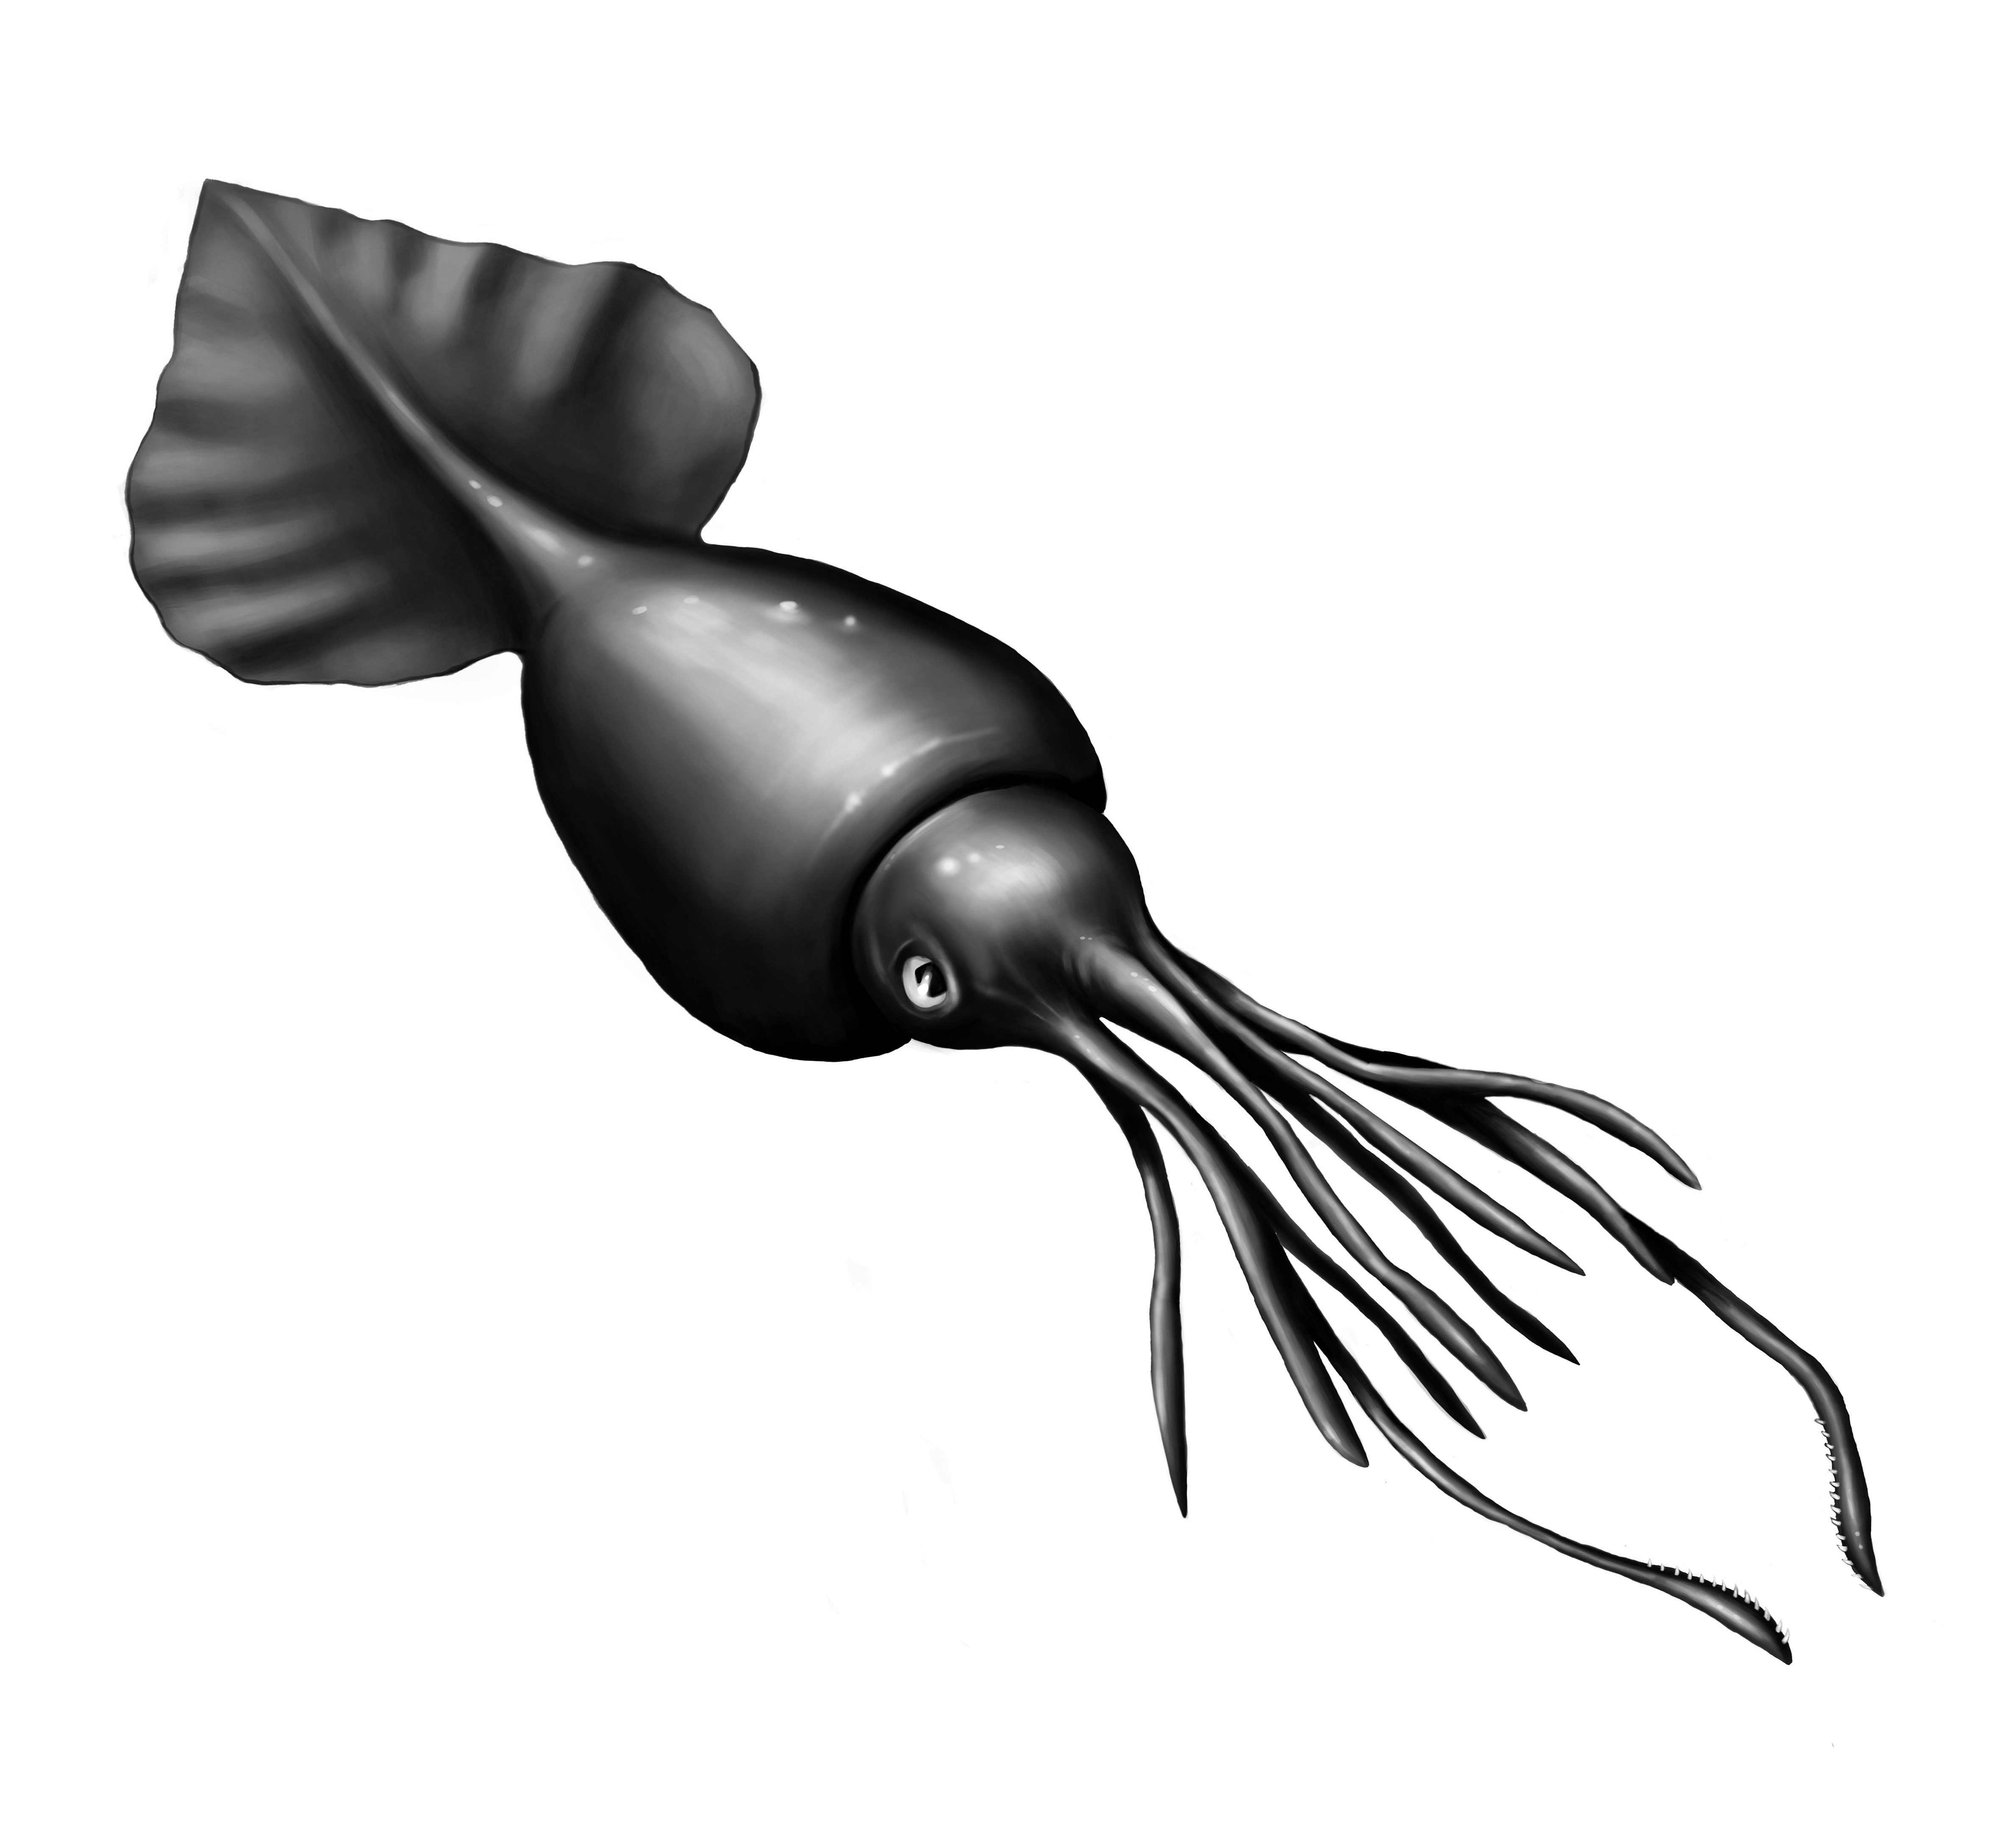 Image of Colossal squid